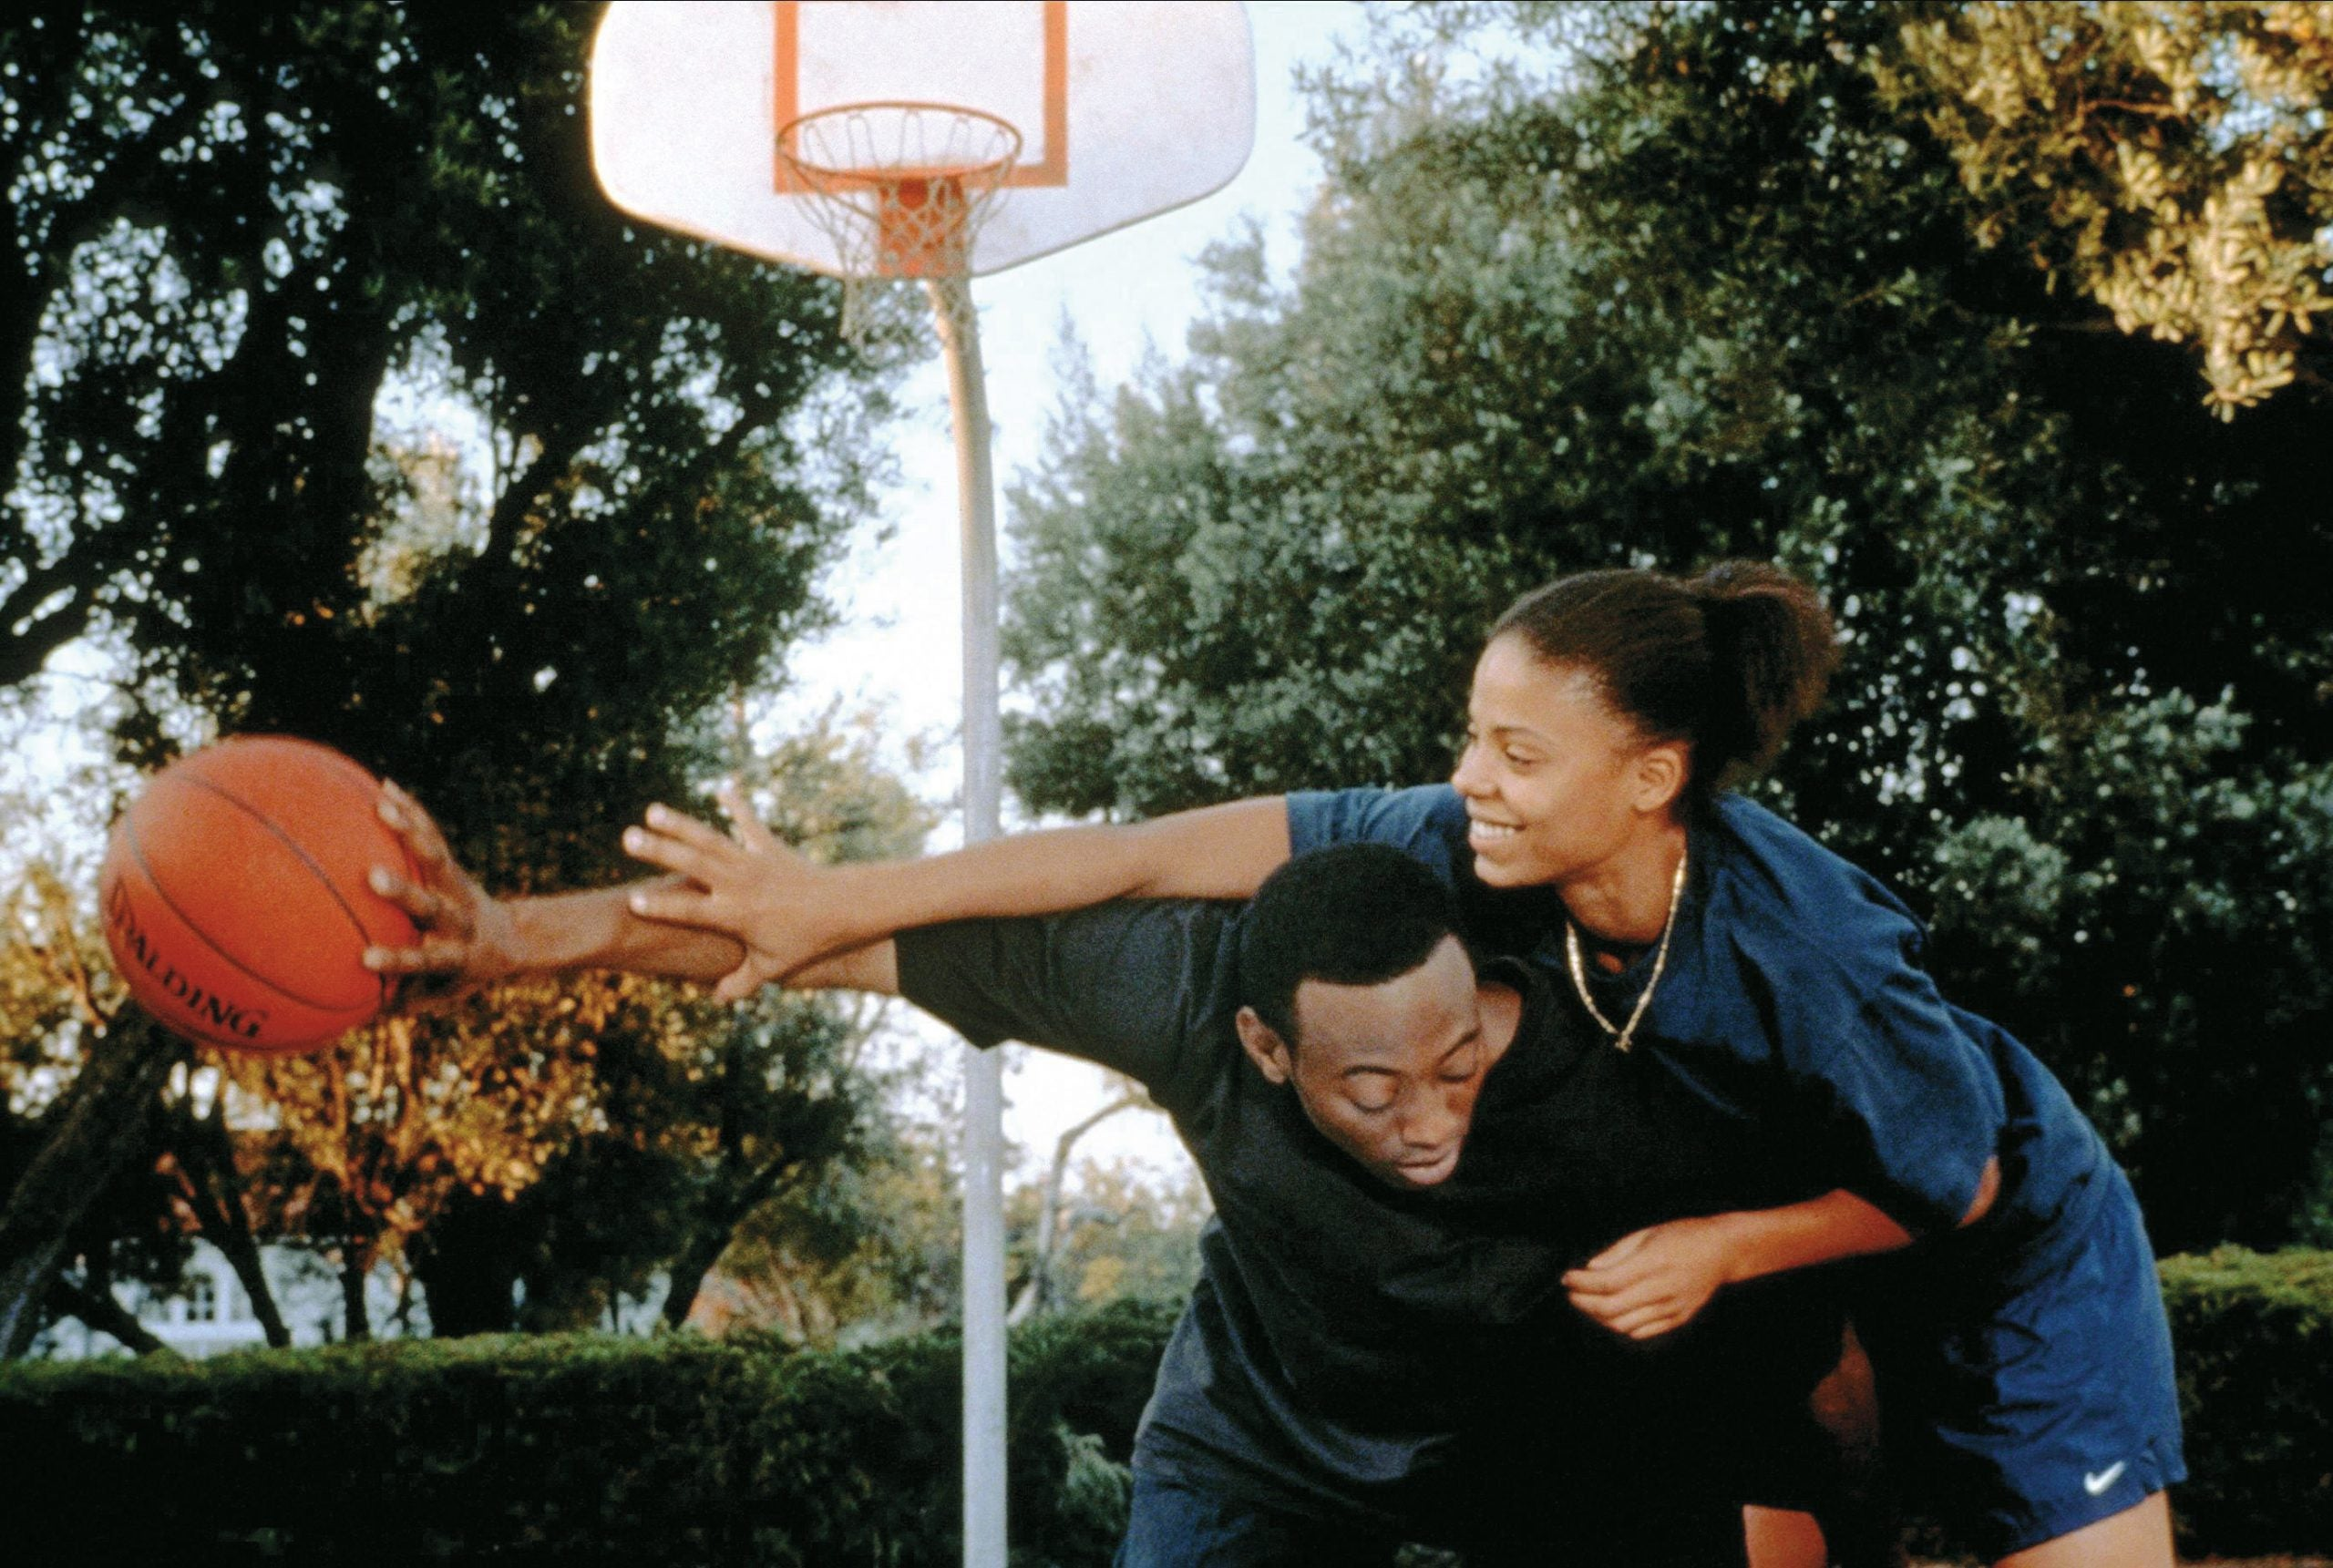 Love & Basketball is more than a chick flick